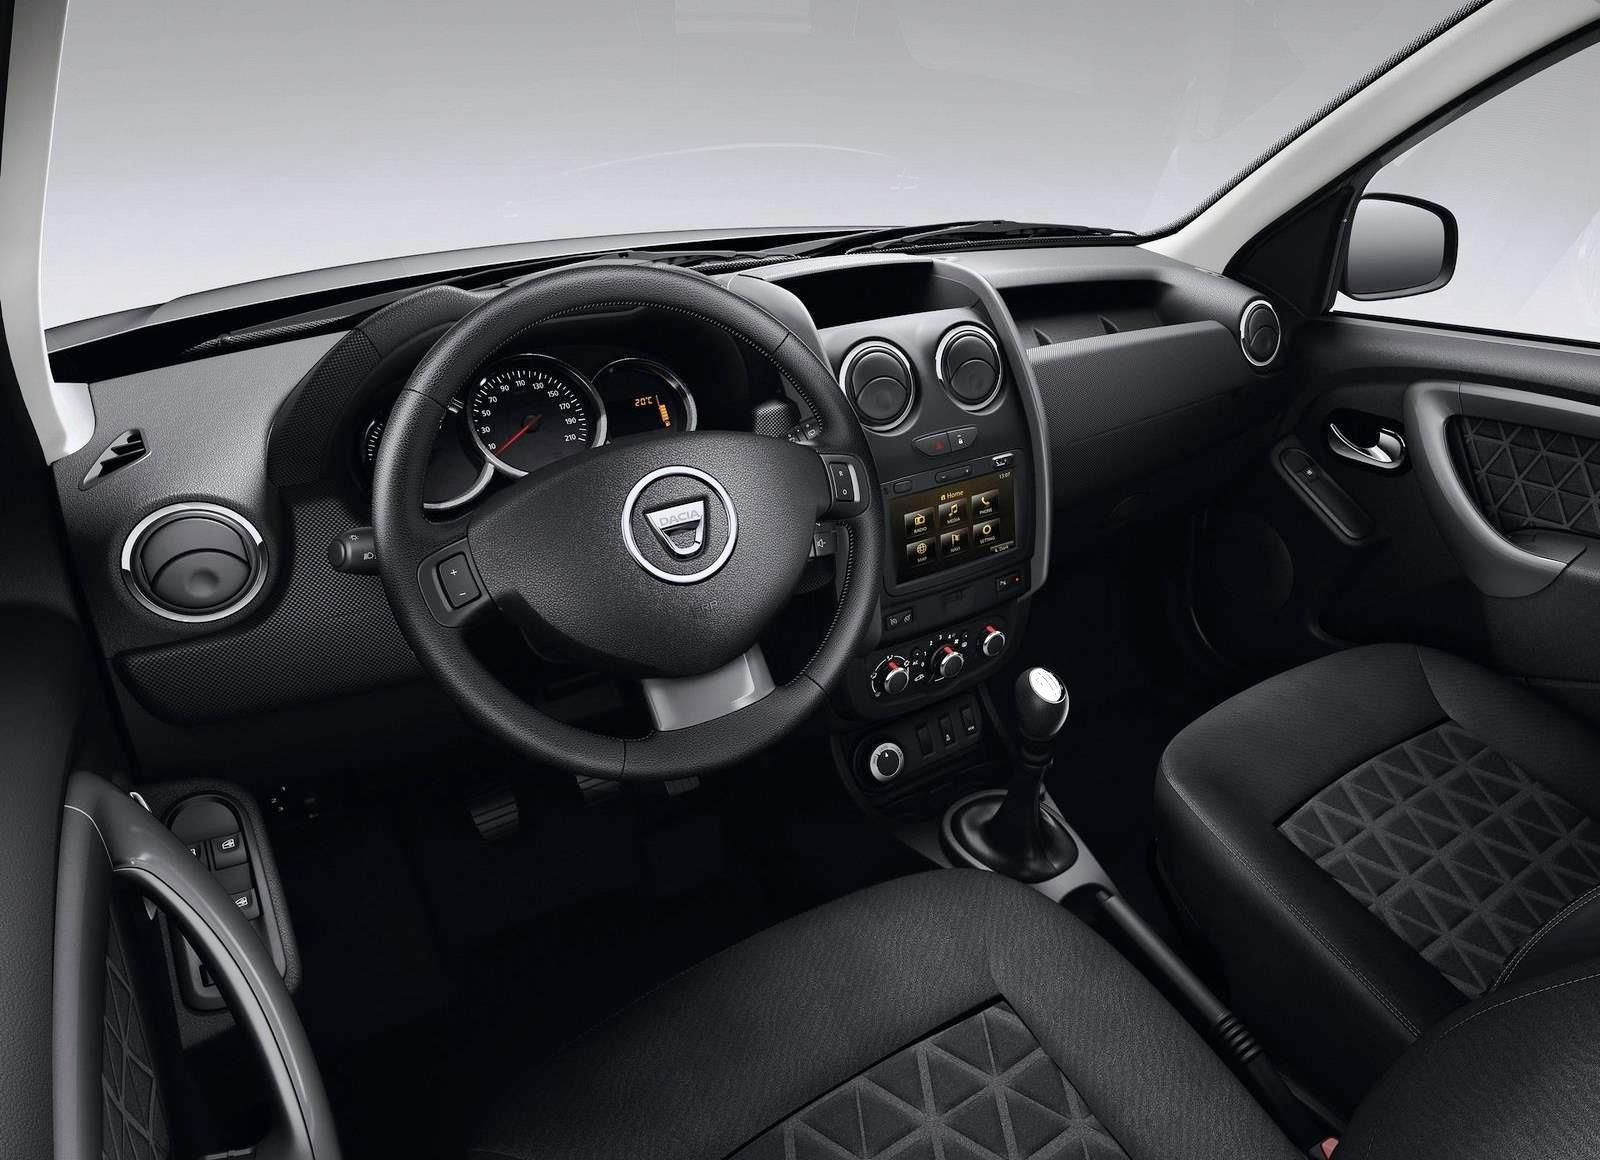 2014 Dacia Duster\'s Interior | Maxabout Autos | Pinterest | Dusters ...